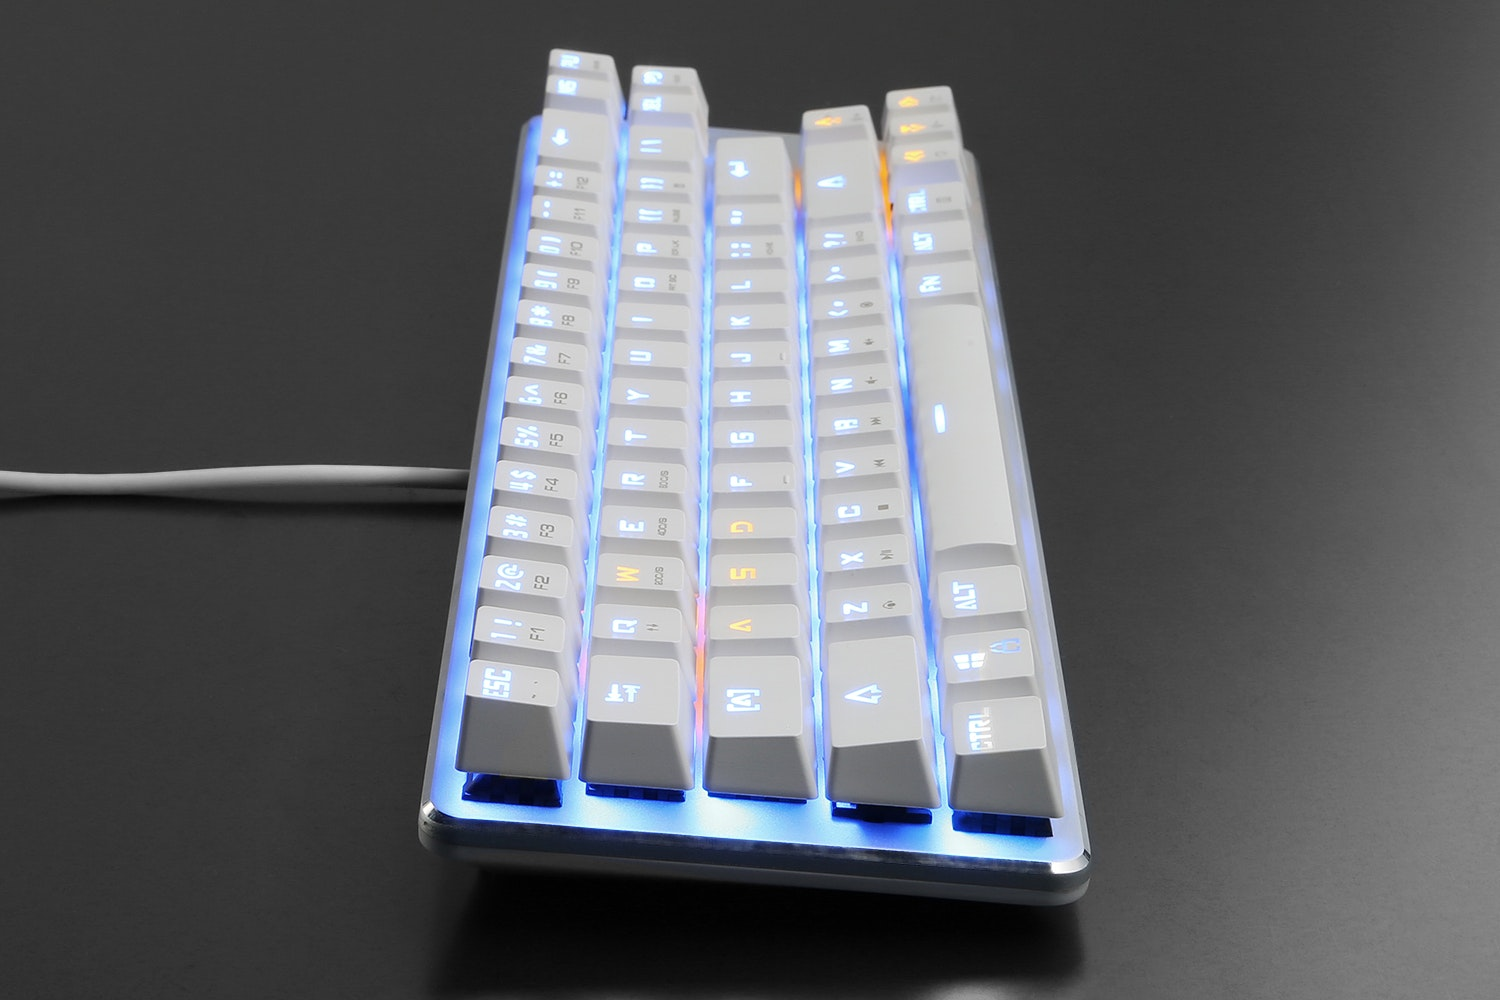 Magicforce 68-Key Mini Mechanical Keyboard